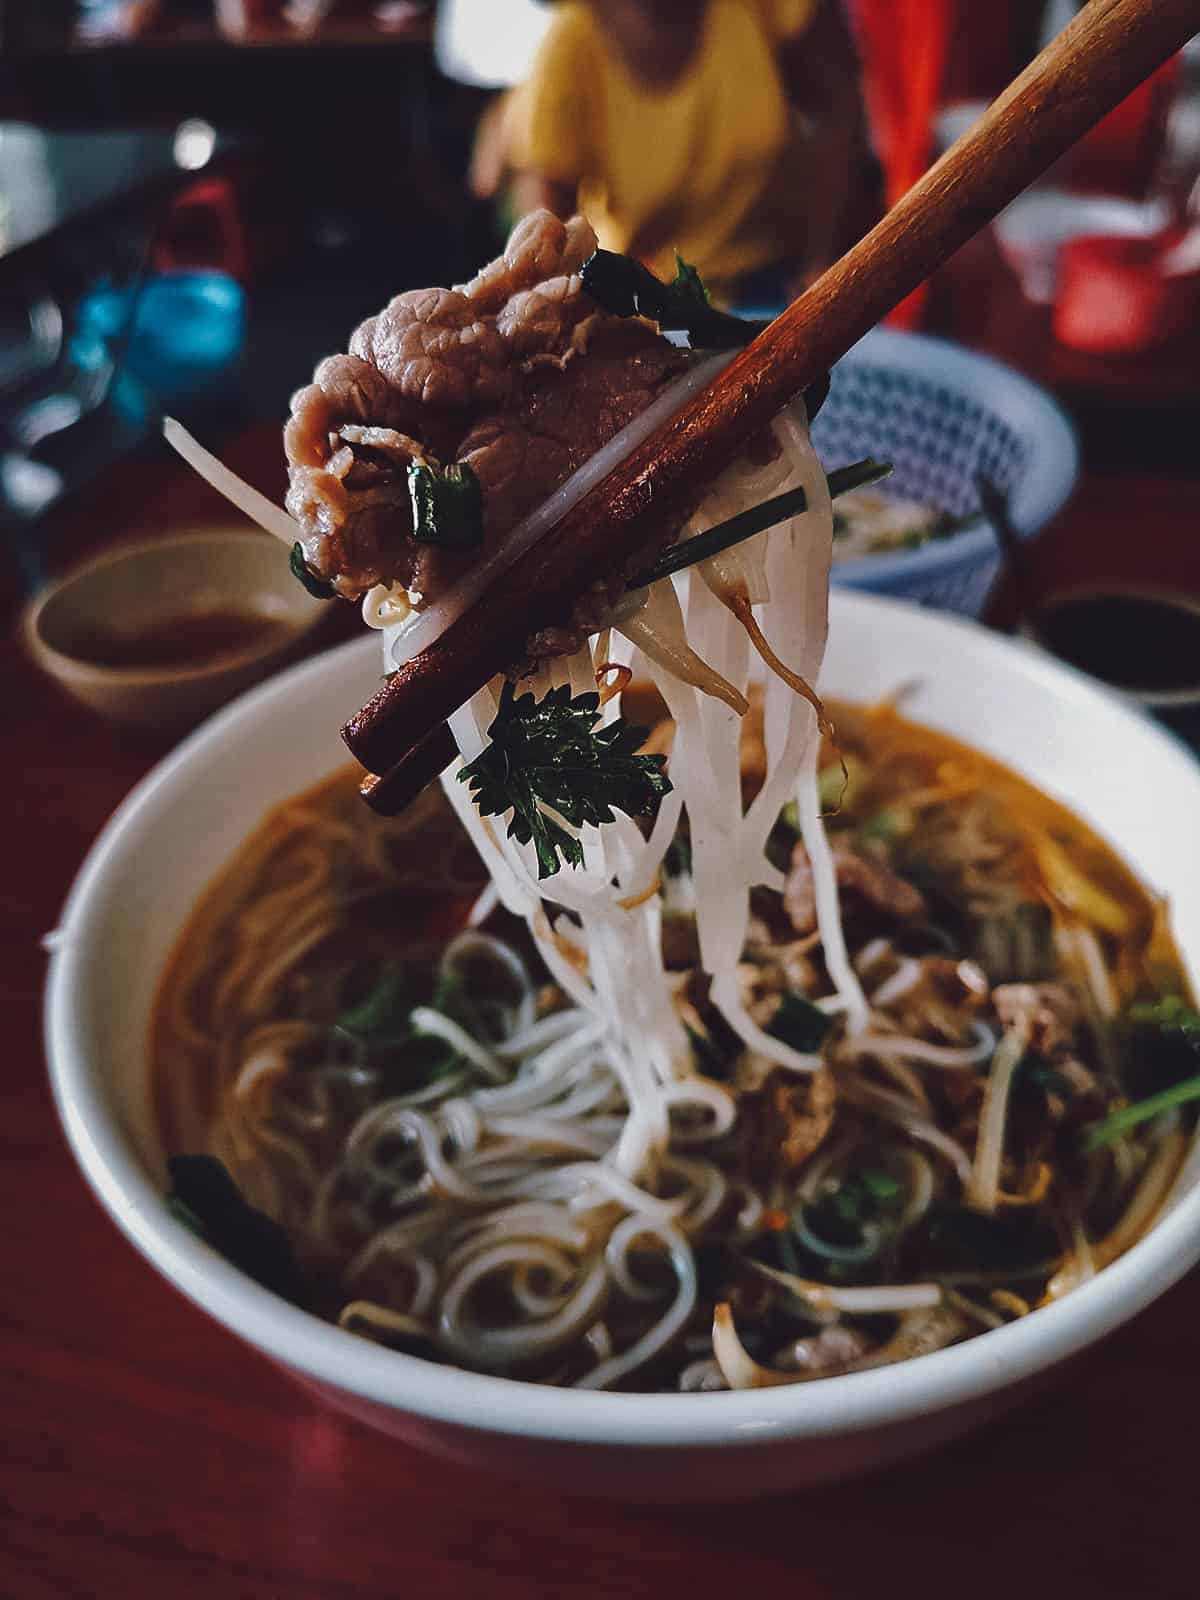 Bun bo hue at Hanh in Vietnam